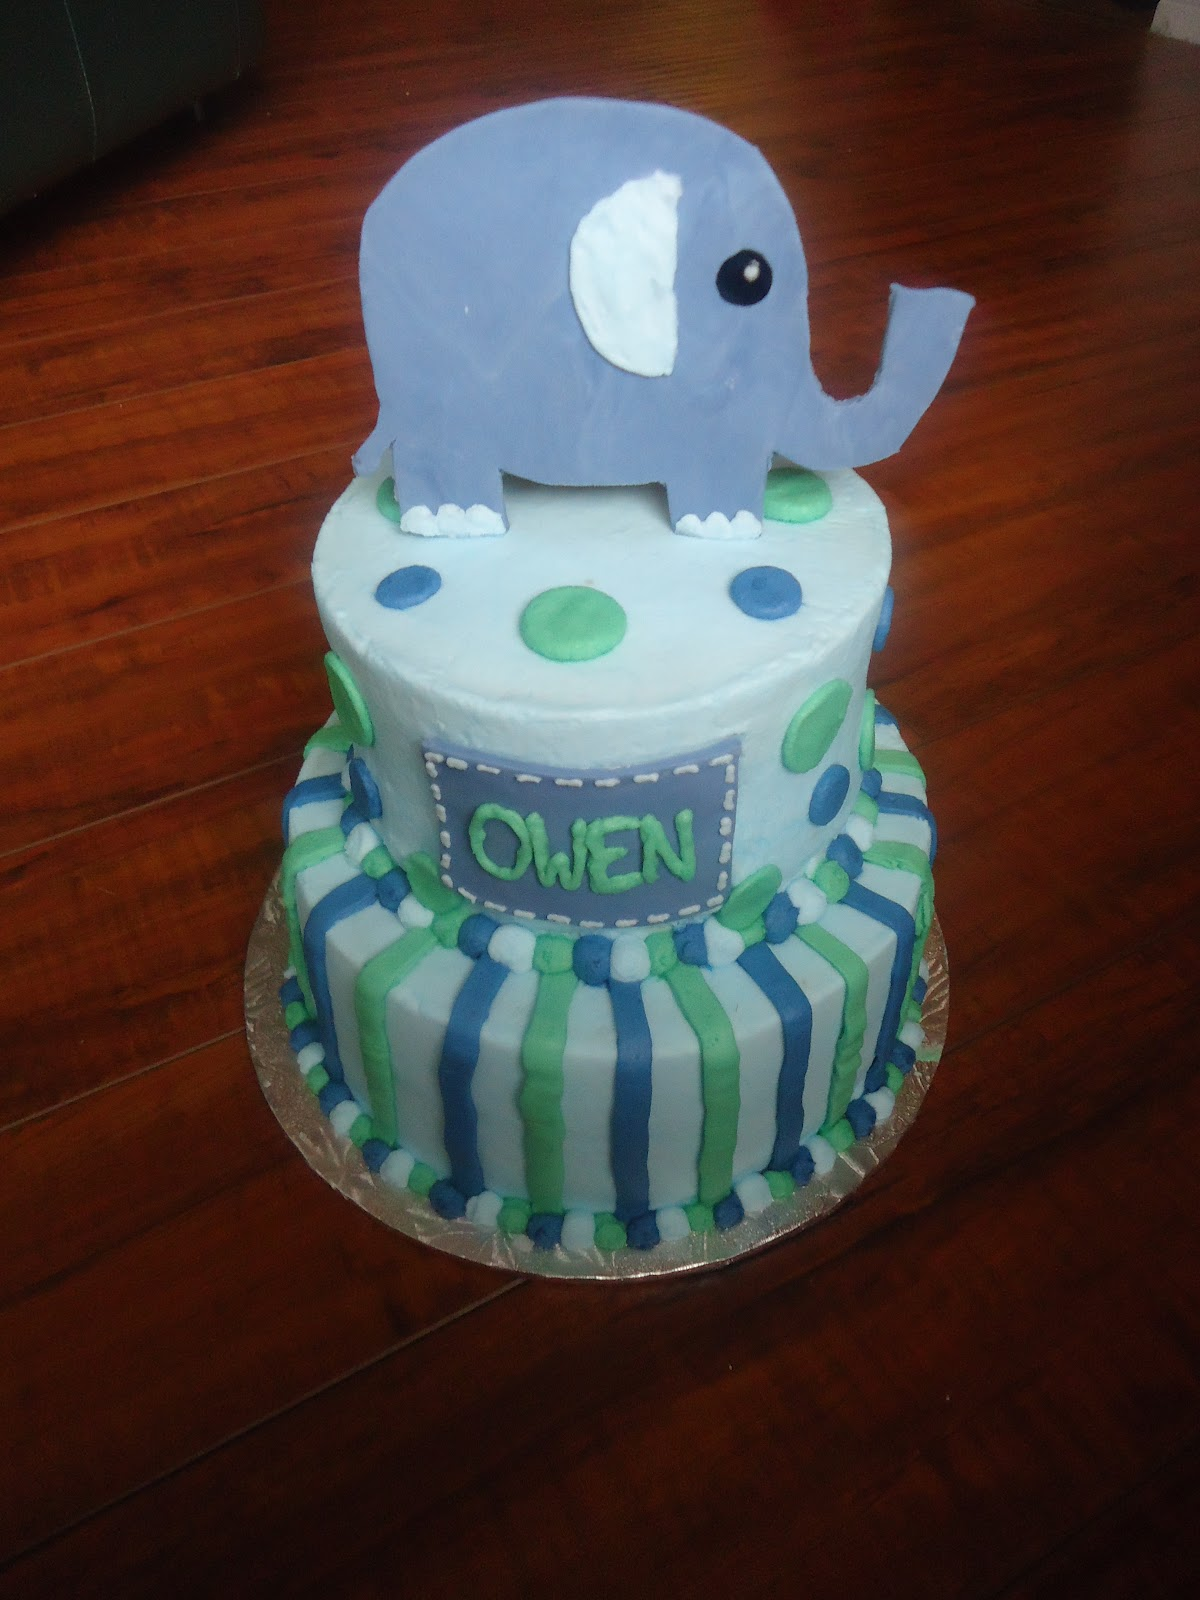 Charity s Sunshine Sweets ELEPHANT BABY SHOWER CAKE